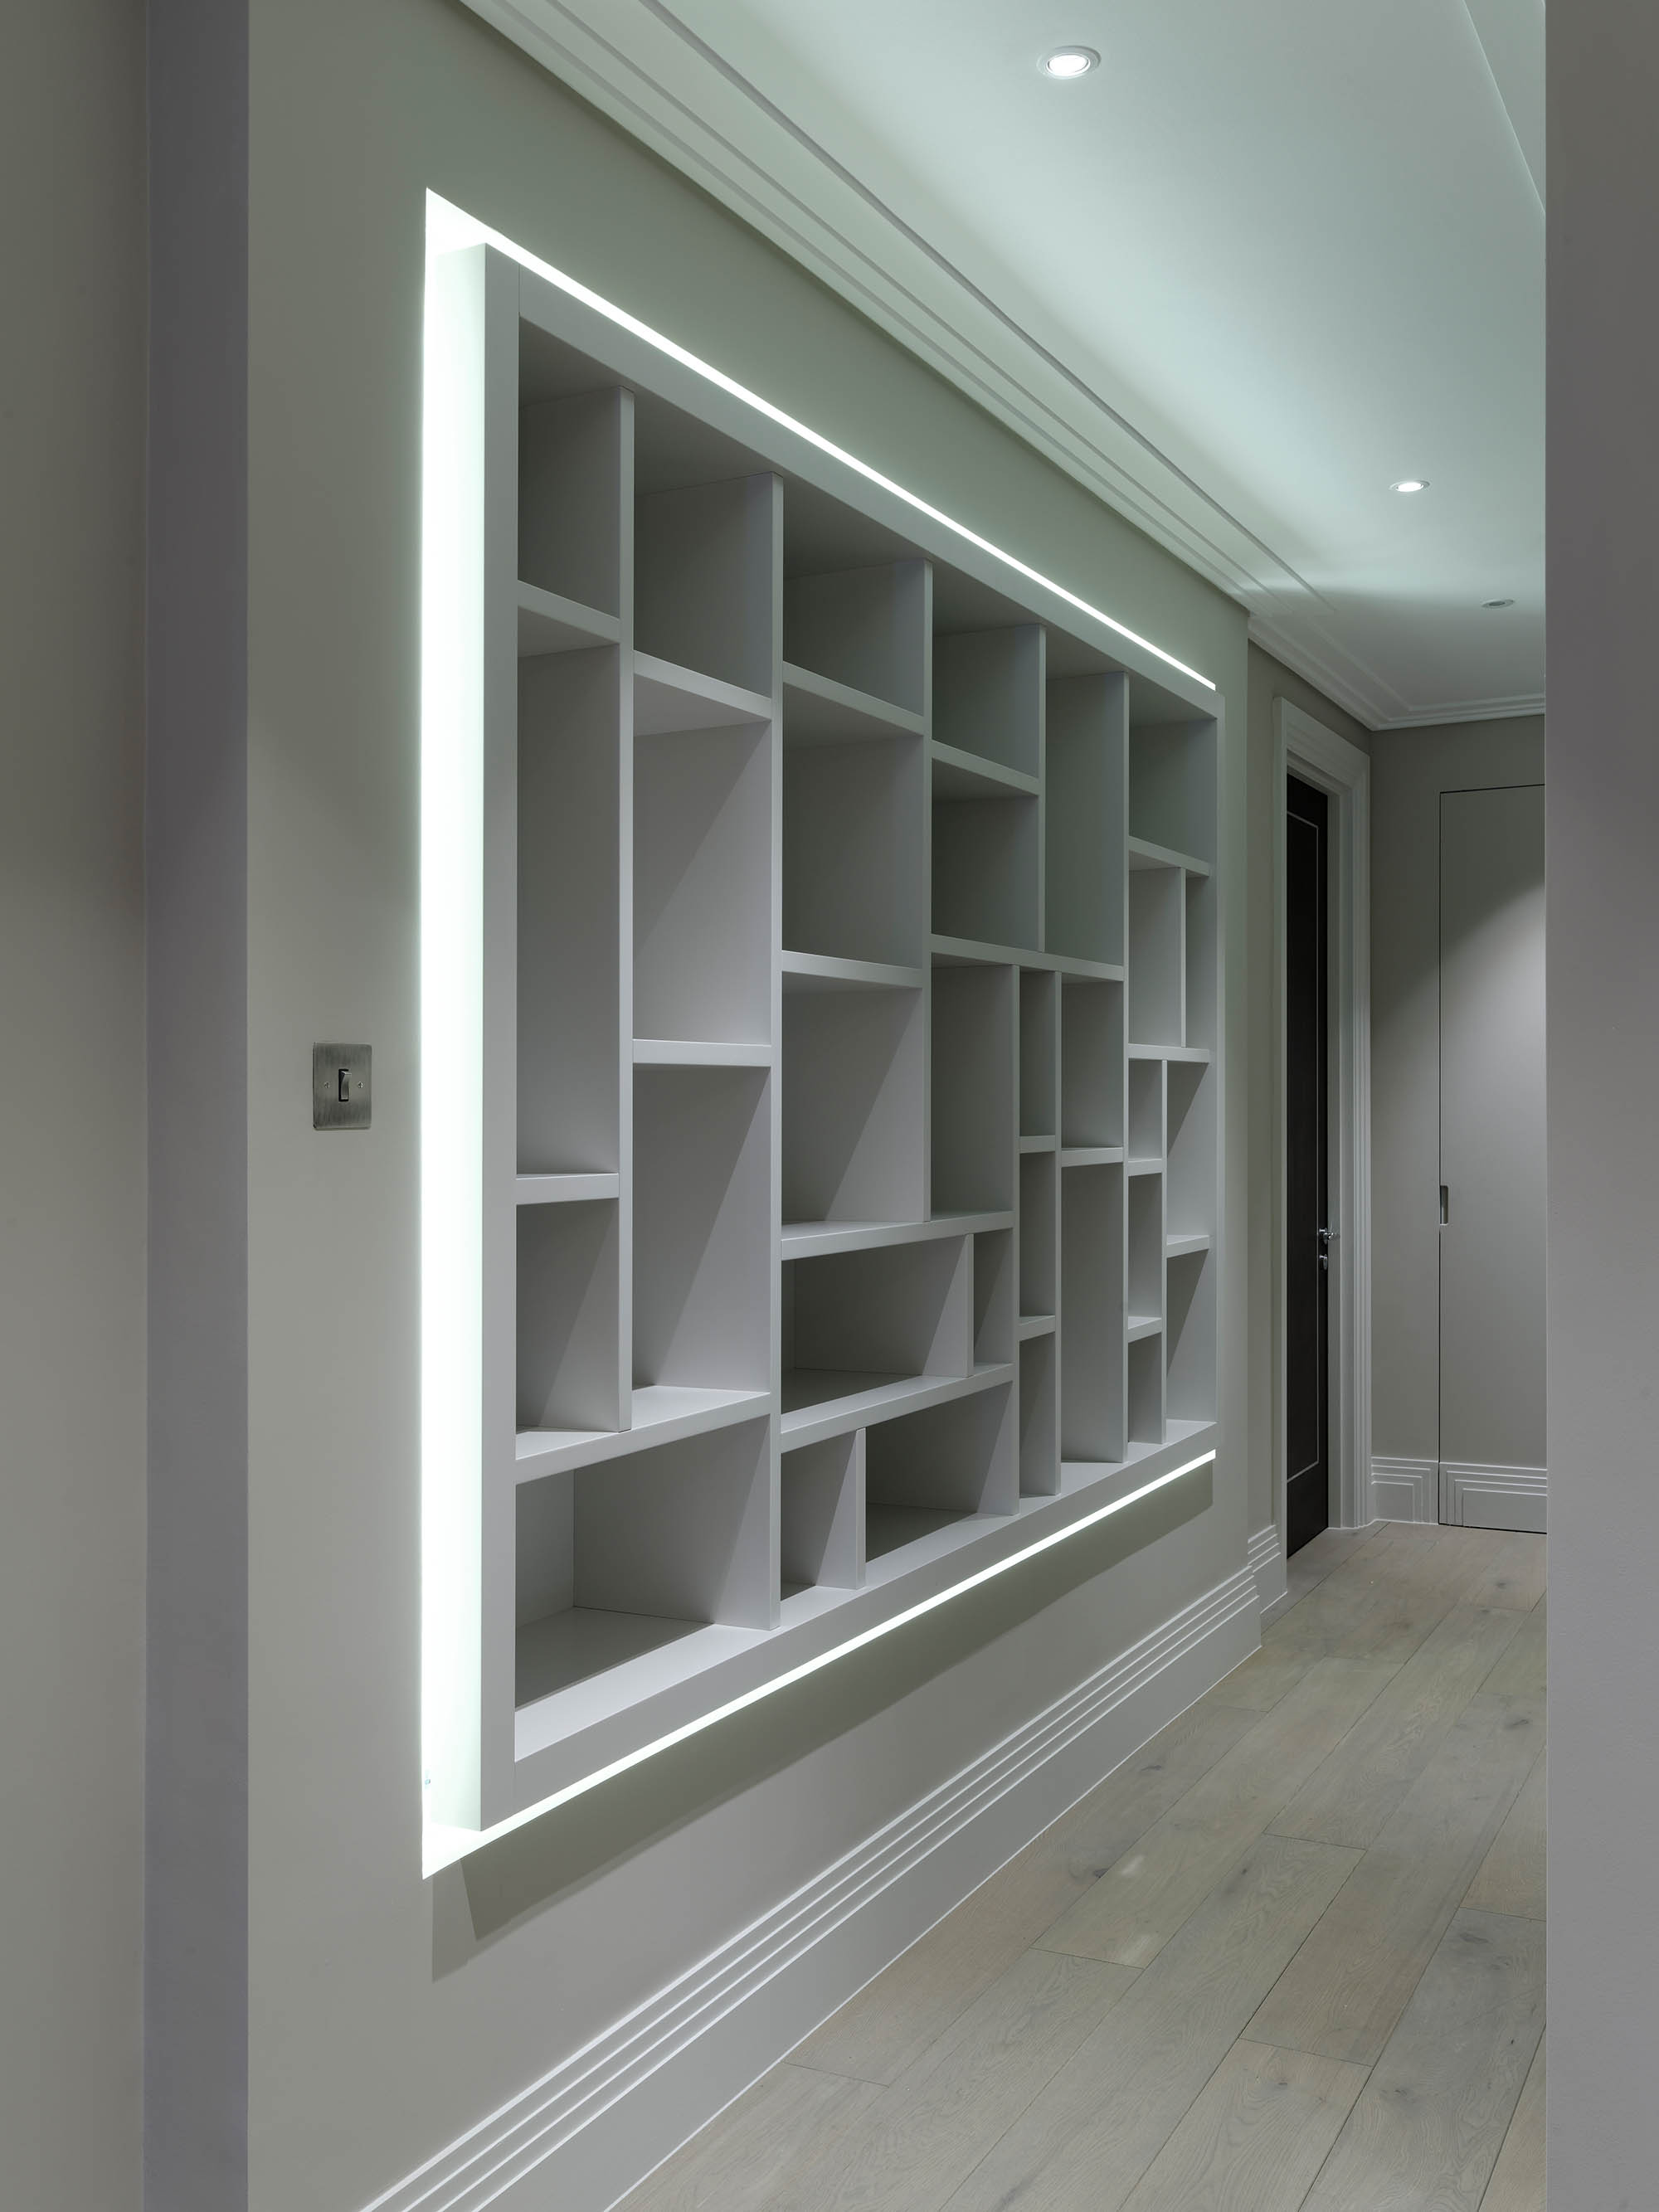 Built in display cabinet wall for luxury penthouse apartment in Chelsea